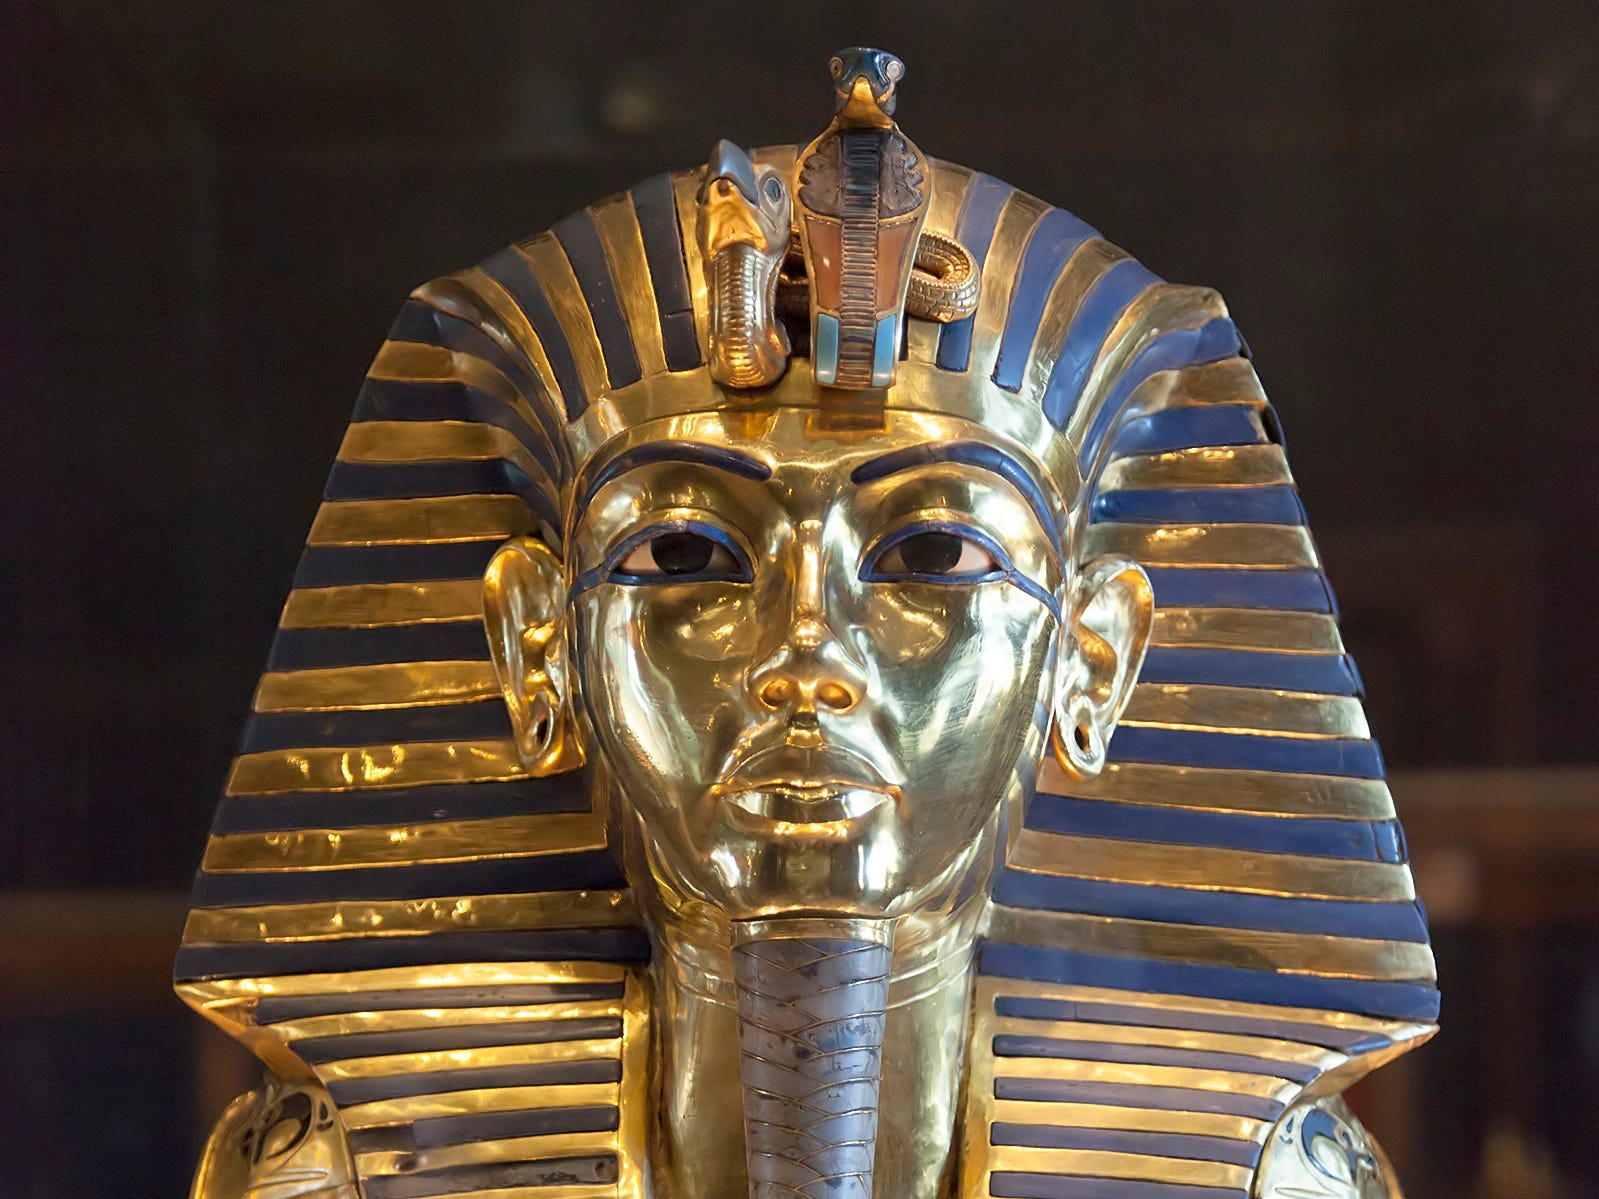 Cairo's Grand Egyptian Museum will be one of the largest museums in the world, displaying artifacts like the funerary mask of King Tutankhamun.